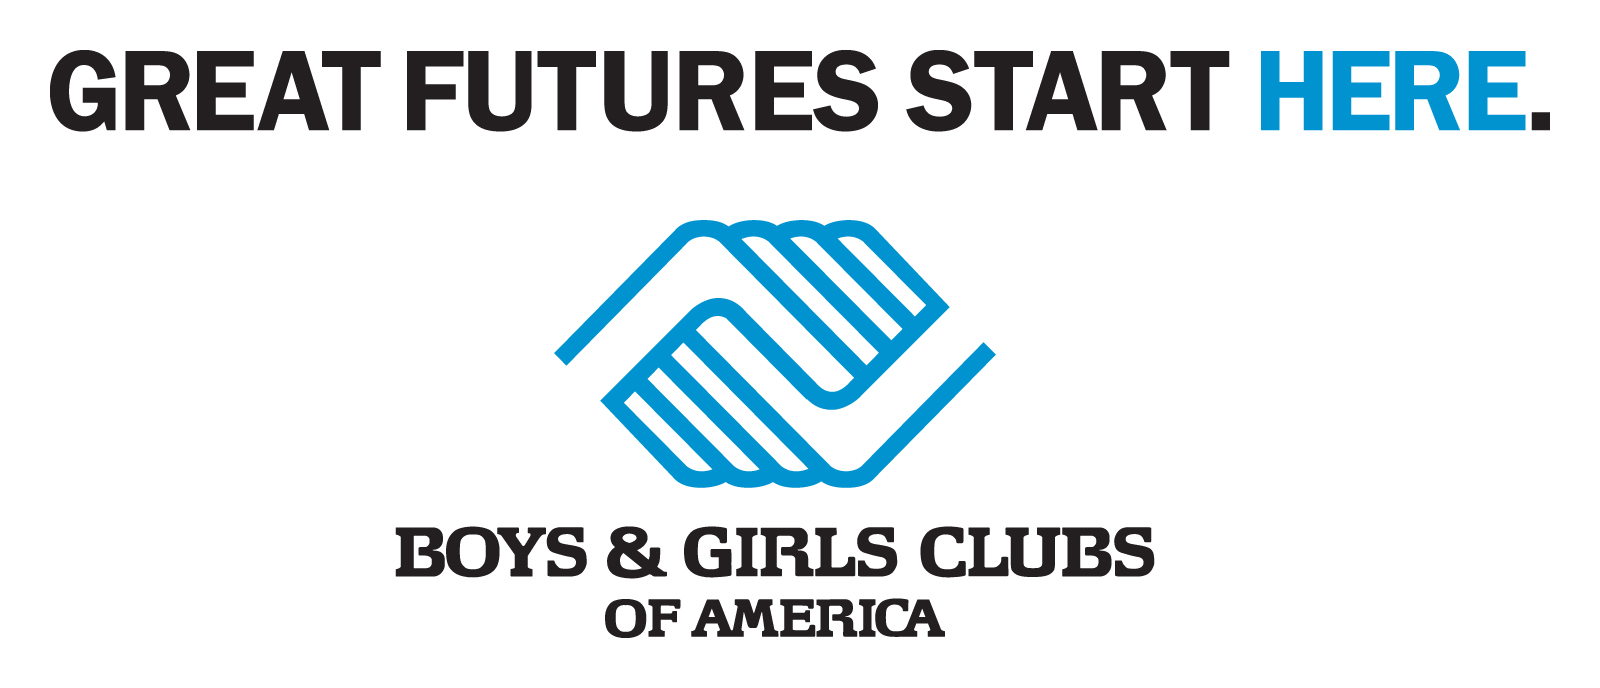 Boys And Girls Clubs Of America   Hot Girls Wallpaper 1600x688